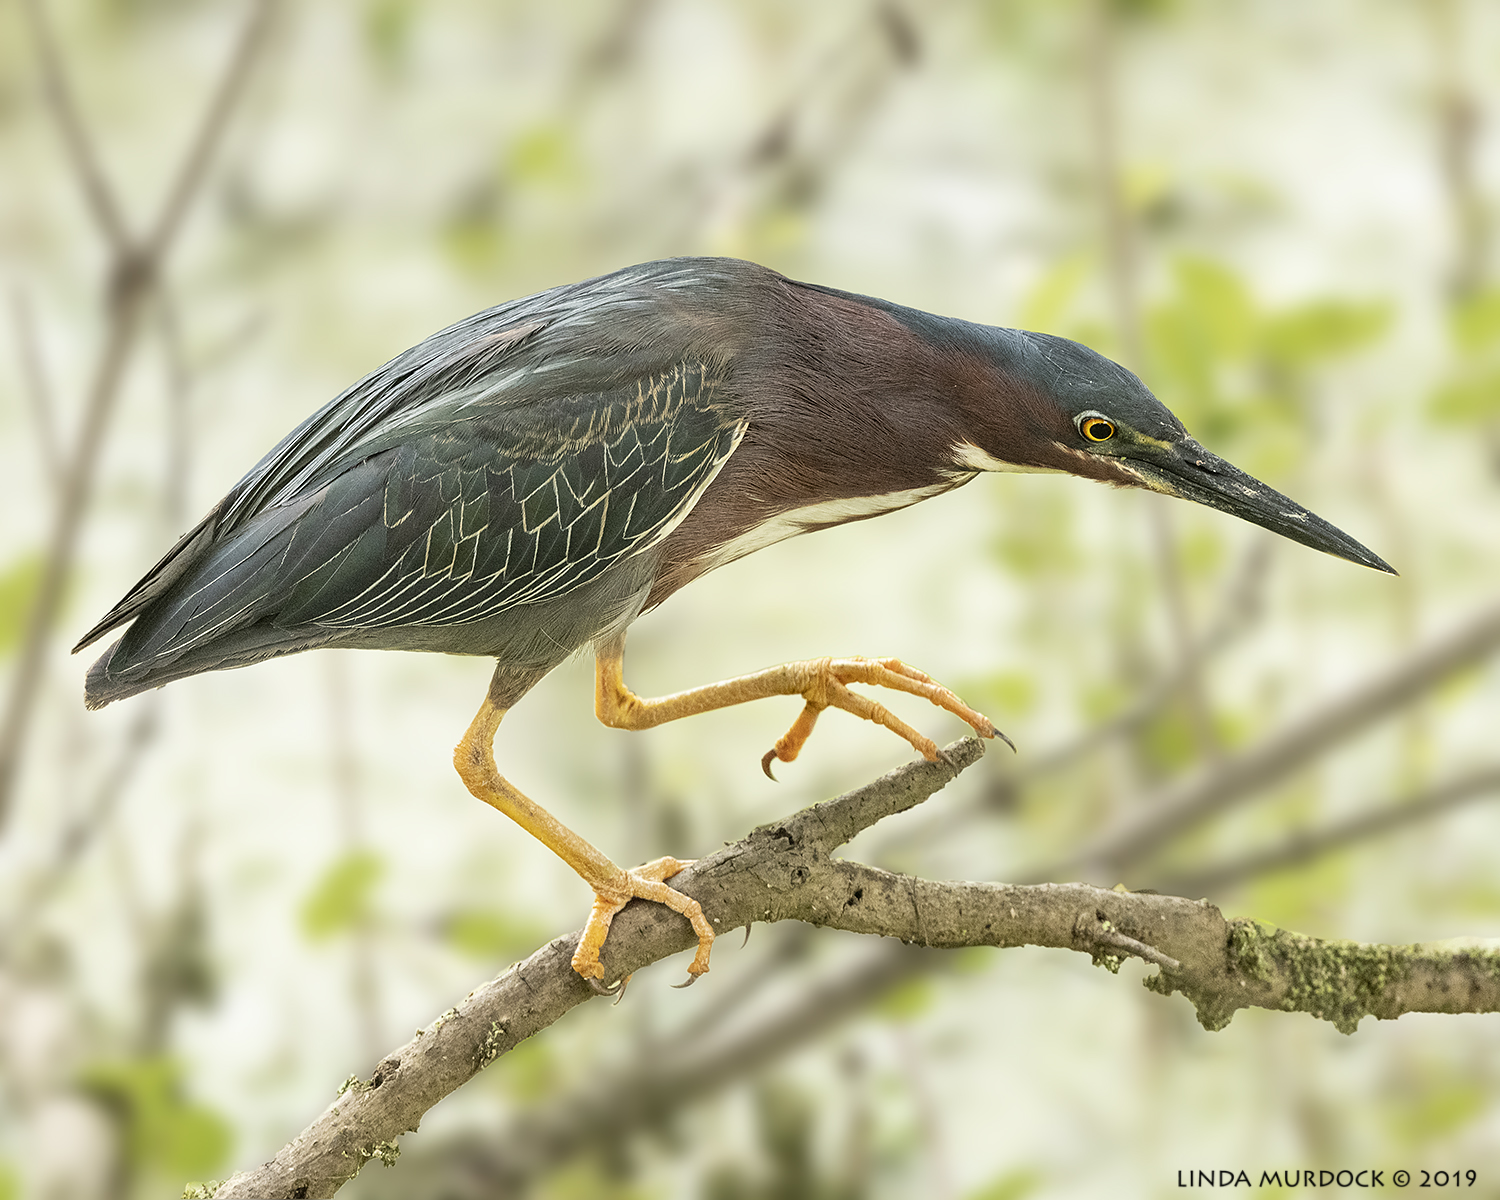 Green Heron getting low to stalk  Nikon D850 with Nikkor 500 f/5.6 PF VR ~ 1/1000 sec f/6.3 ISO 3200